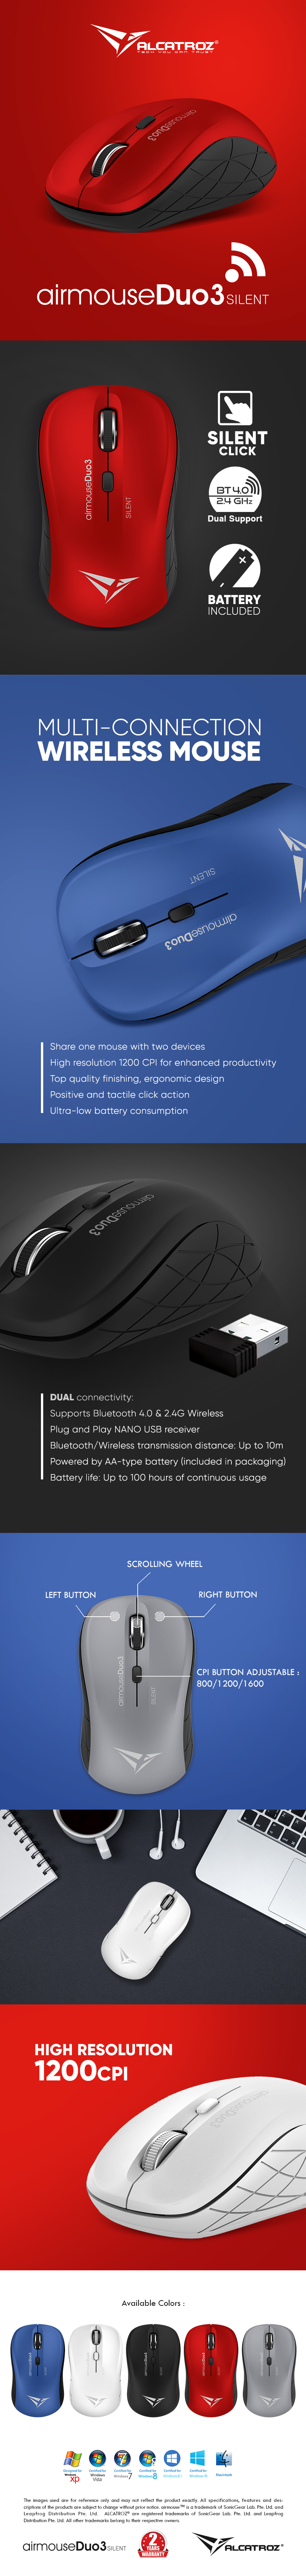 ALCATROZ BLUETOOTH 3.0/WIRELESS MOUSE DUO 3 SILENT BLACK eDM Airmouse Duo3 Silent 1